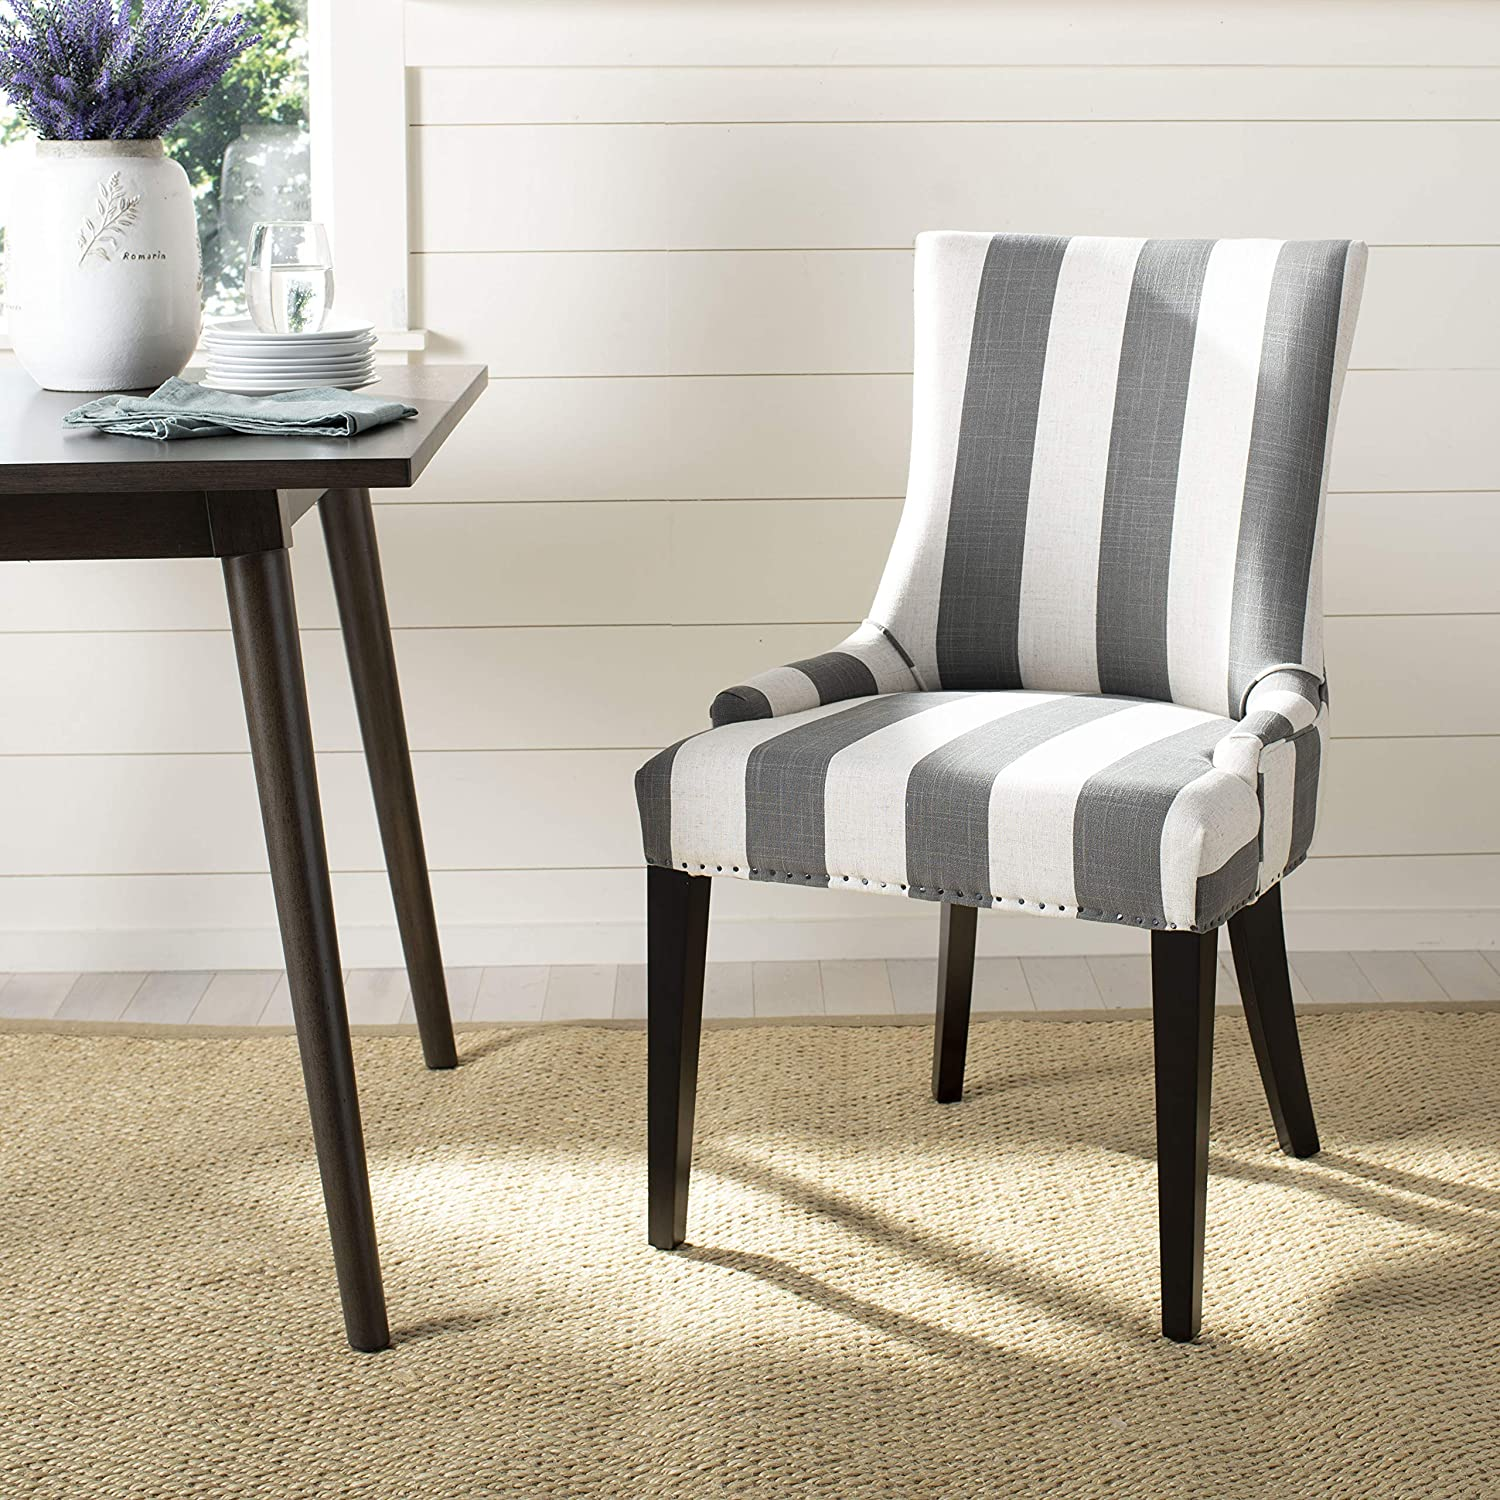 Safavieh Mercer Collection Limited time sale Eva and Chair Striped Selling rankings wi White Dining